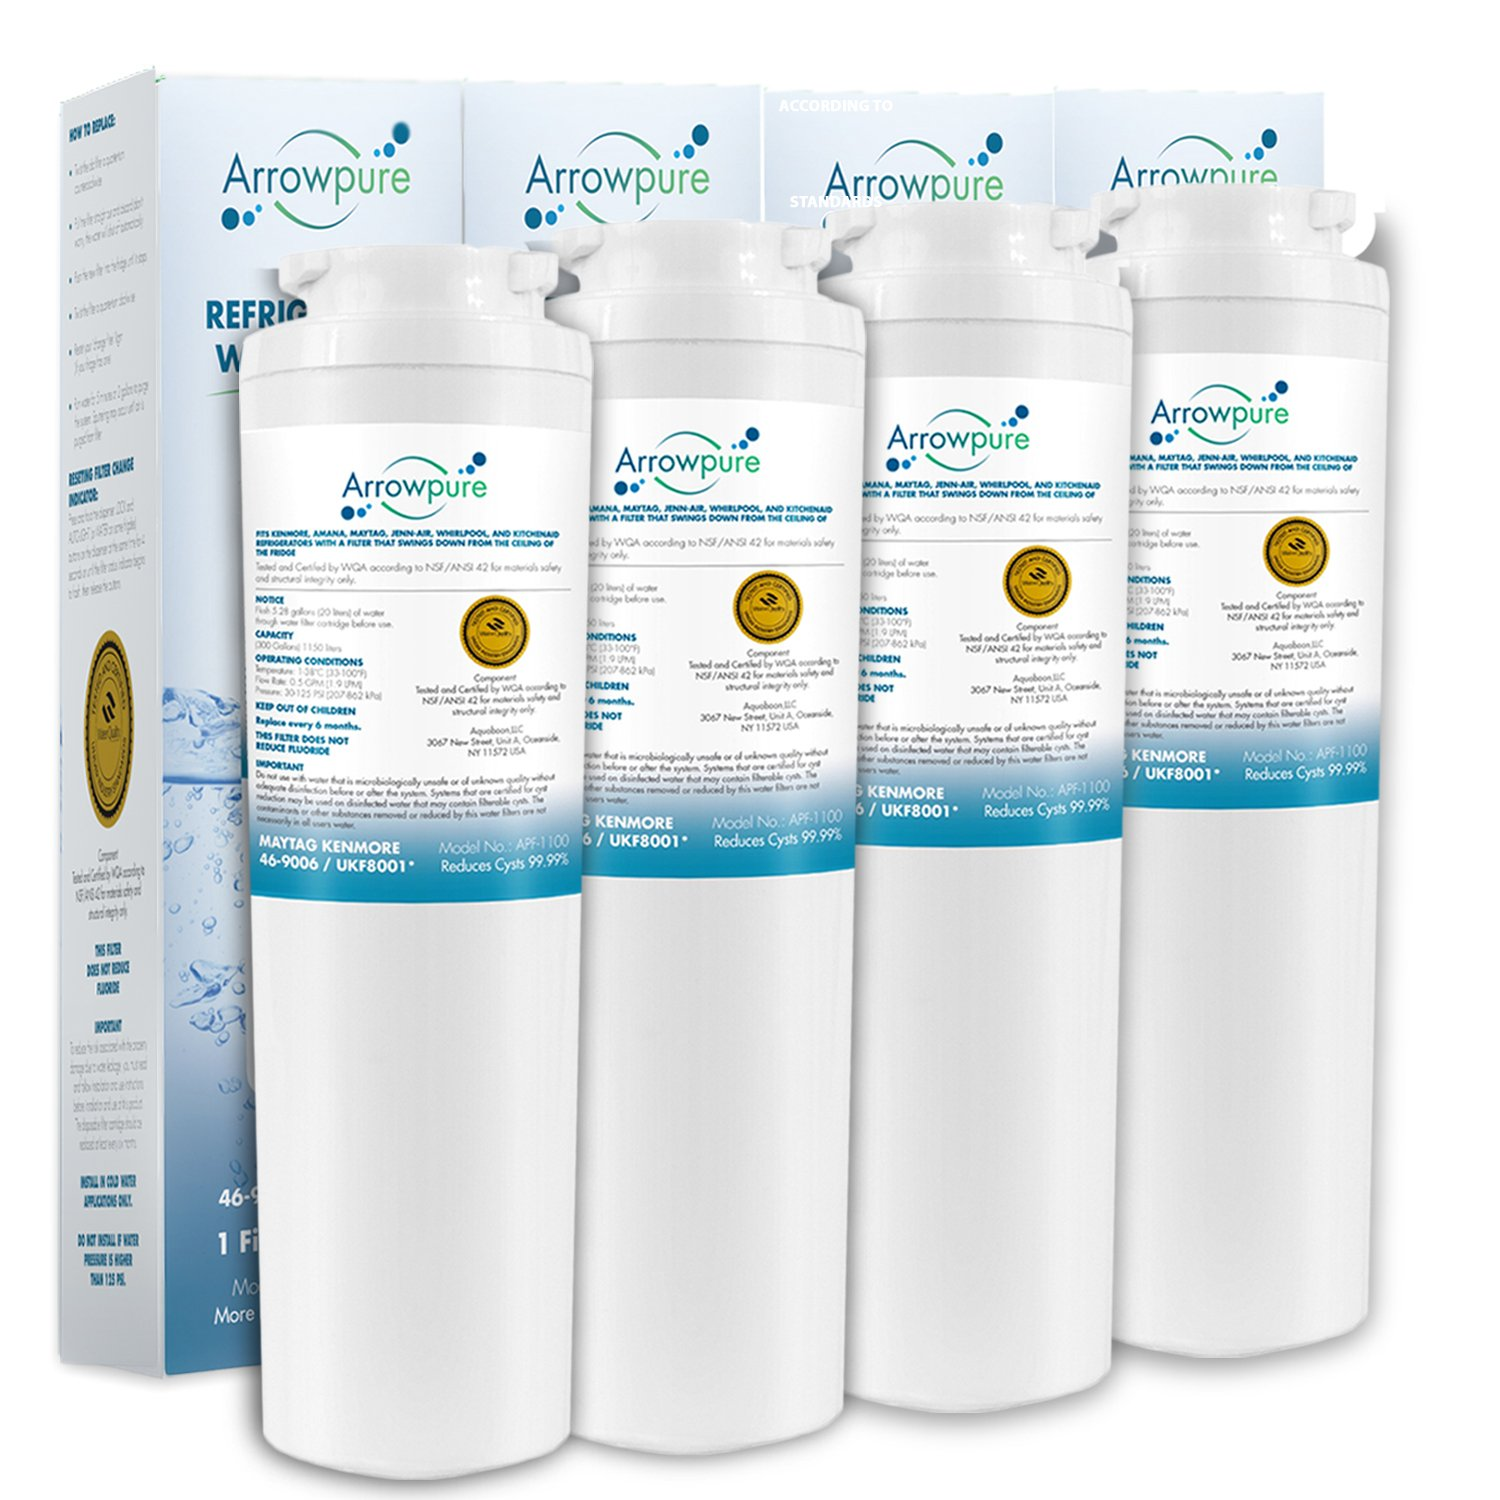 4 Pack Refrigerator Water Filter Replacement by Arrowpure | Certified According to NSF 42&372 | Compatible with Maytag UKF8001, UKF8001AXX, UKF8001P, EDR4RXD1, 4396395, Puriclean II, Kenmore